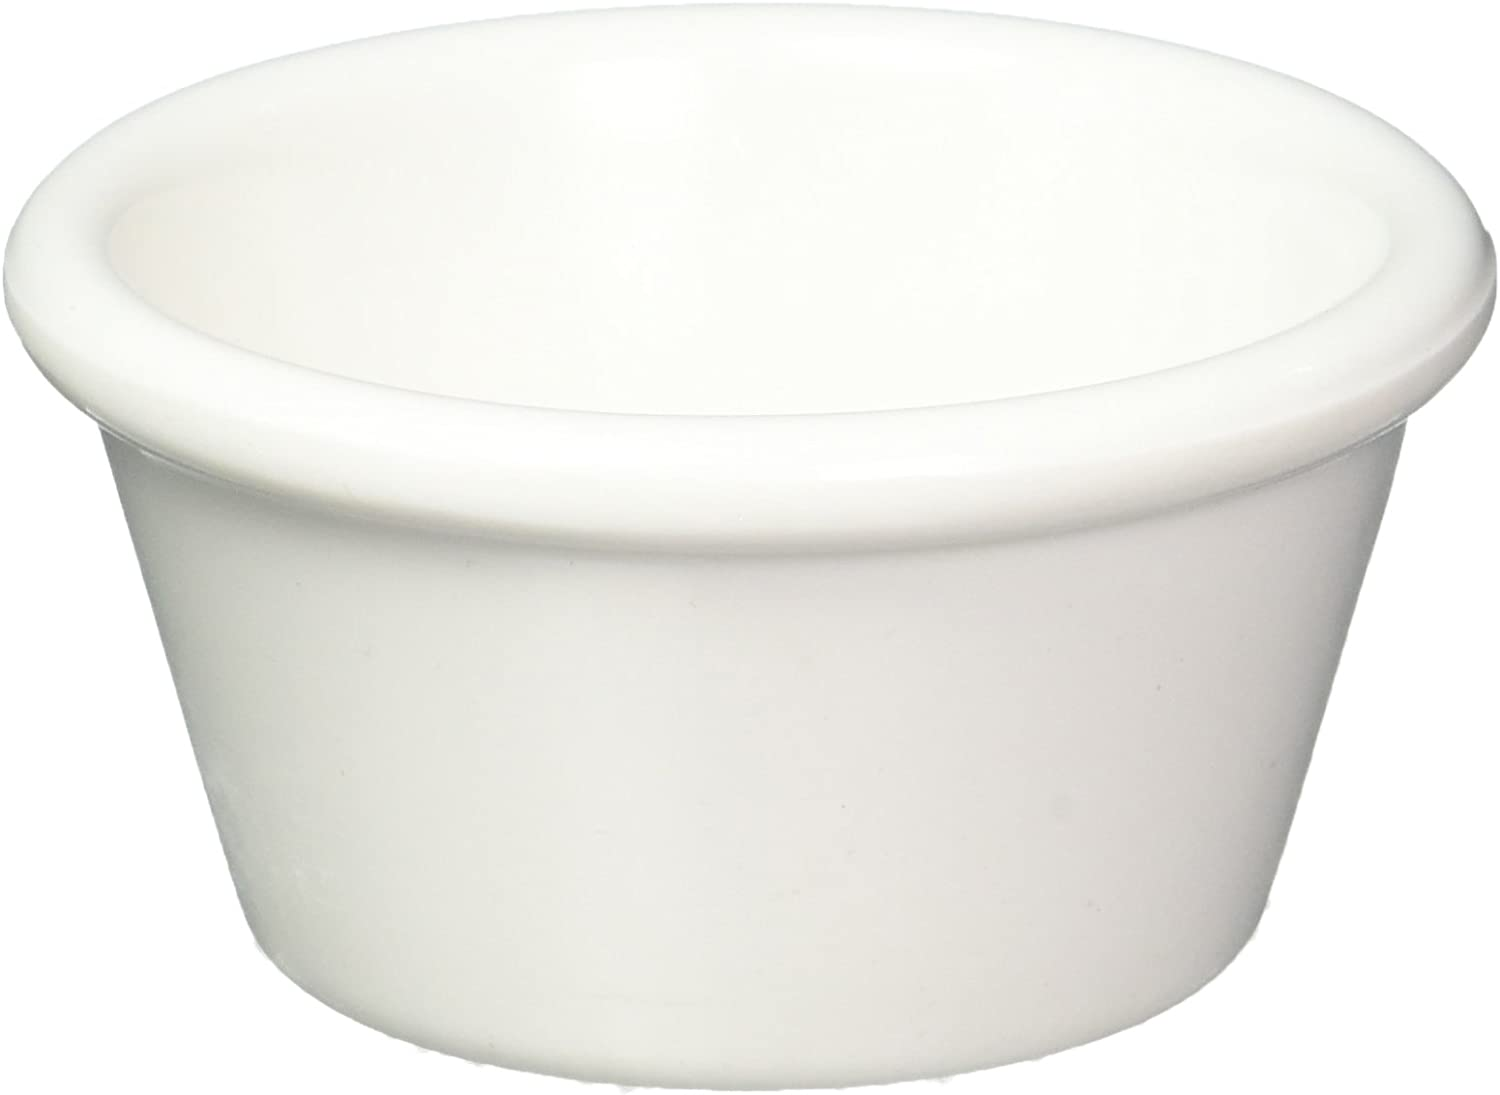 Kitchen Supply White Porcelain Ramekin 2-Ounce